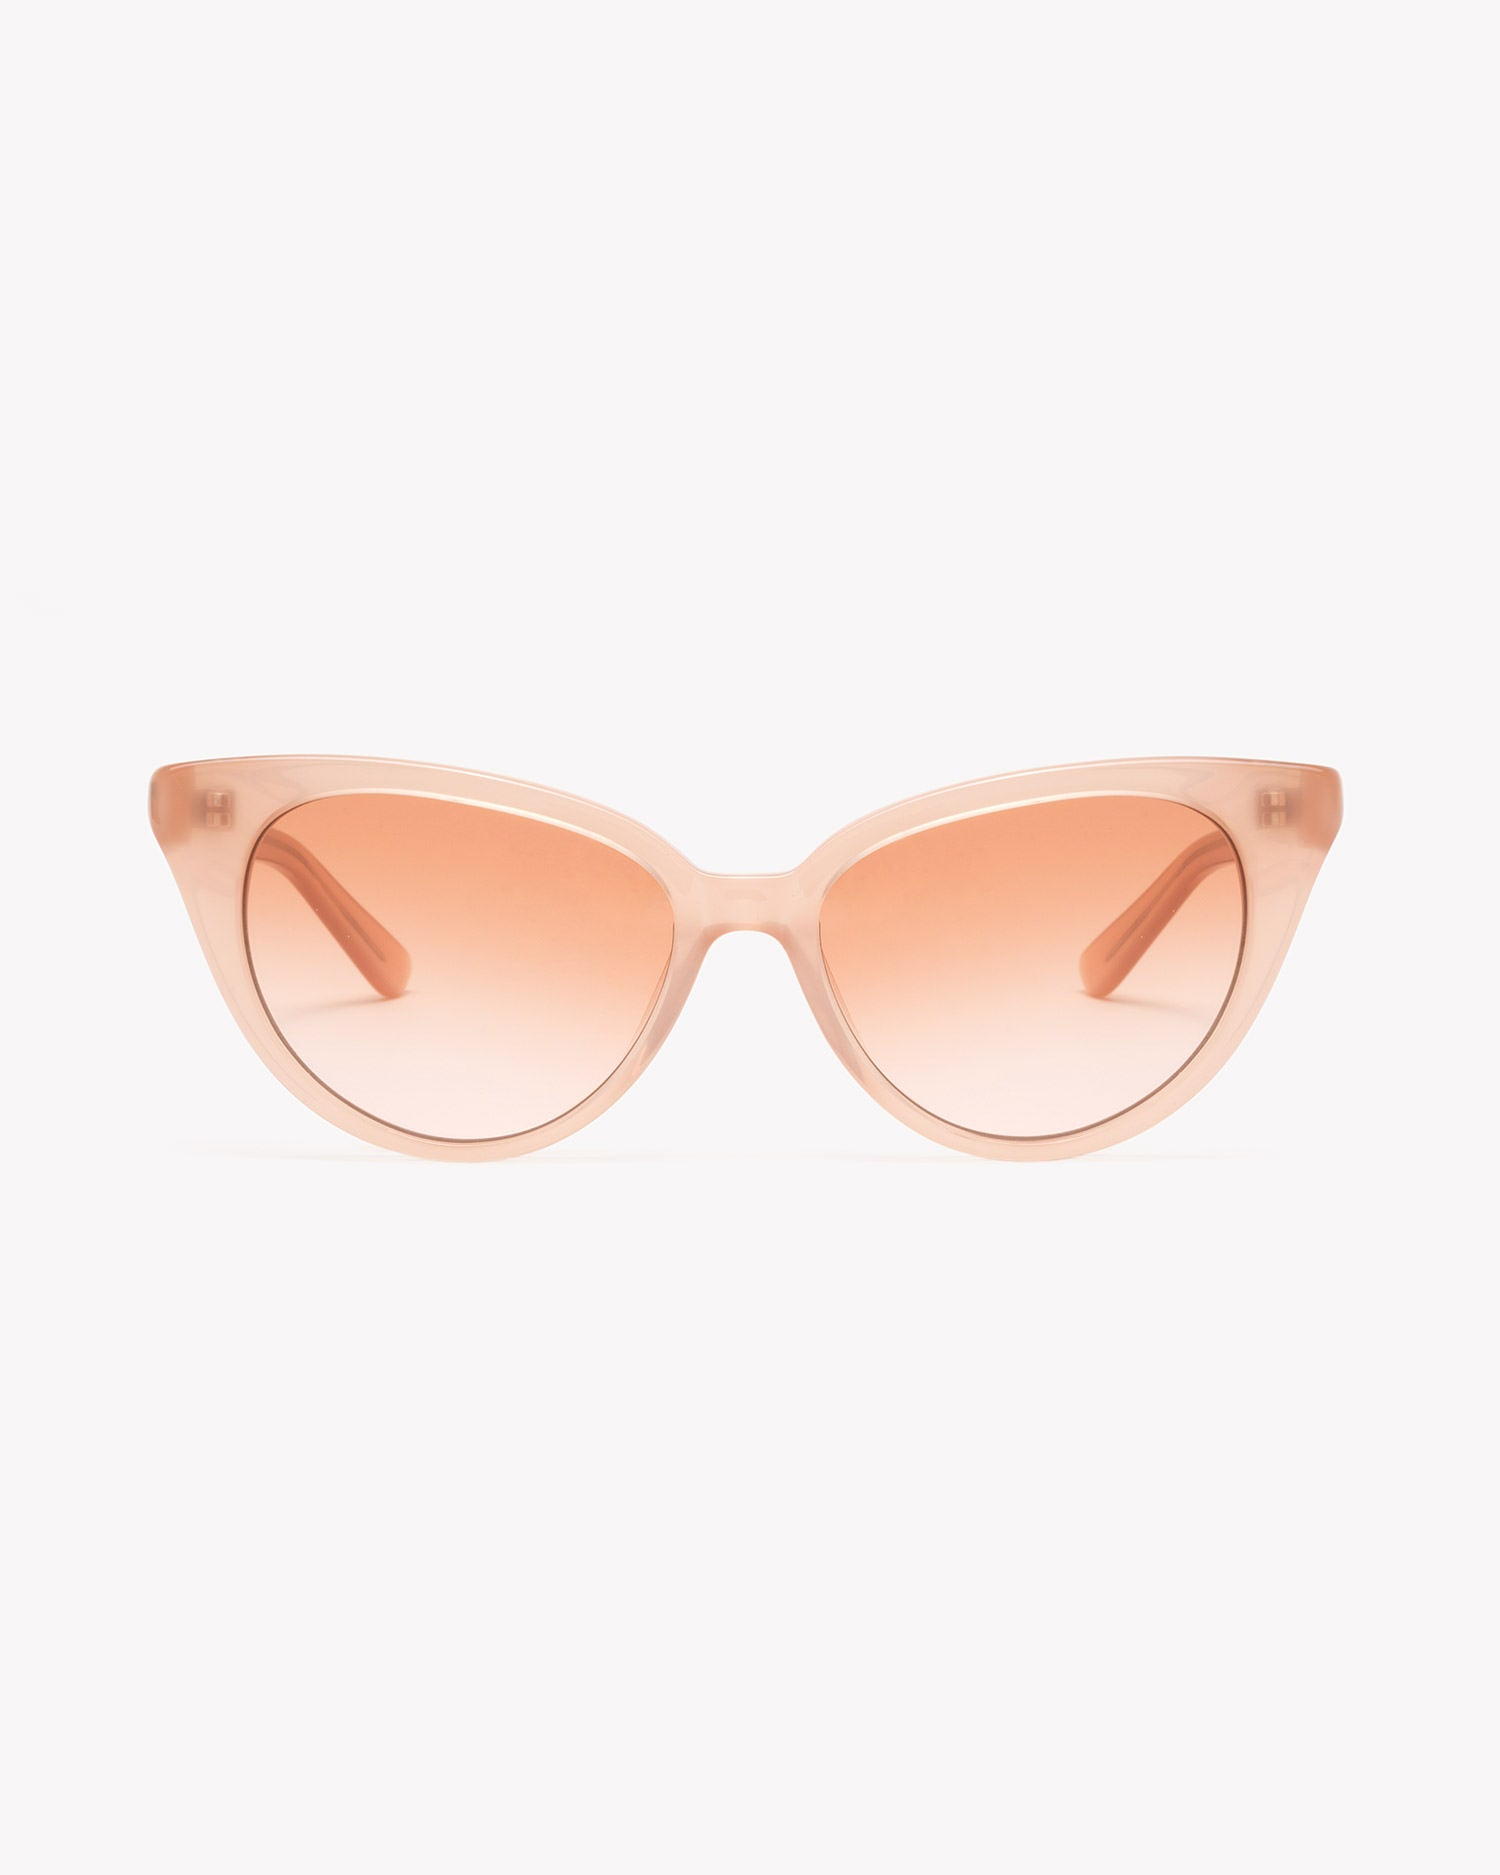 Velvet Canyon cat eye sunglasses, La Femme, Cat People Peach